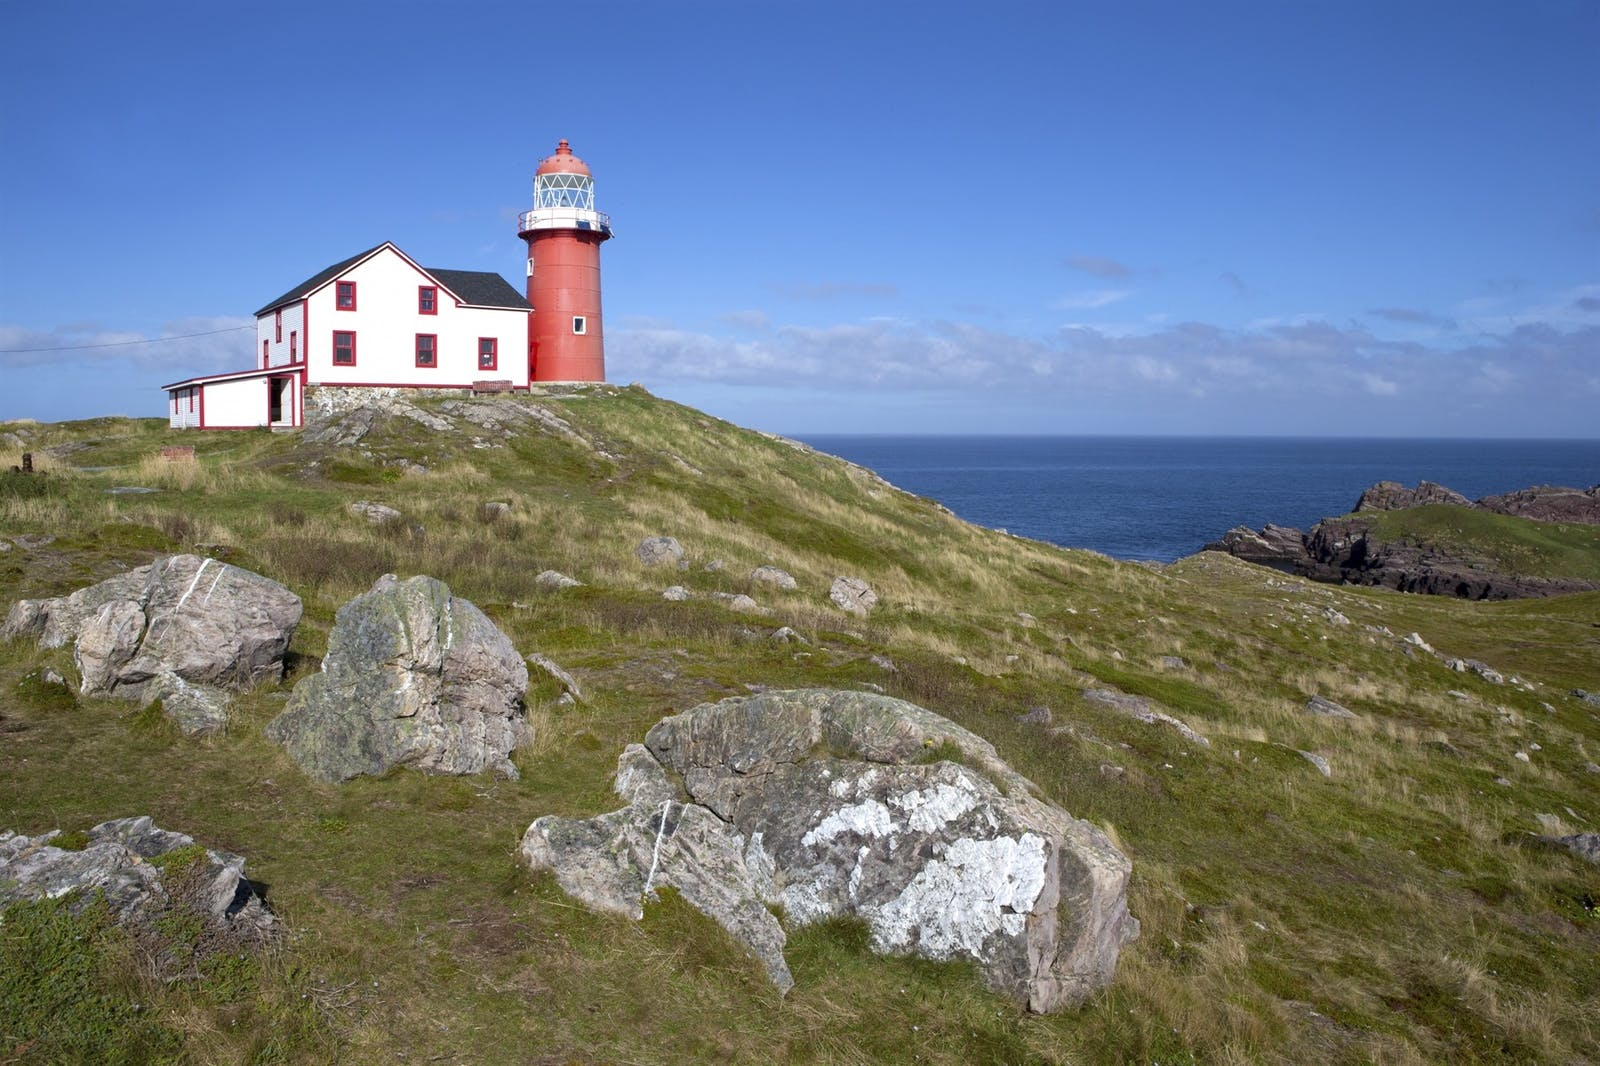 Ferryland lighthouse on Avalon Peninsula